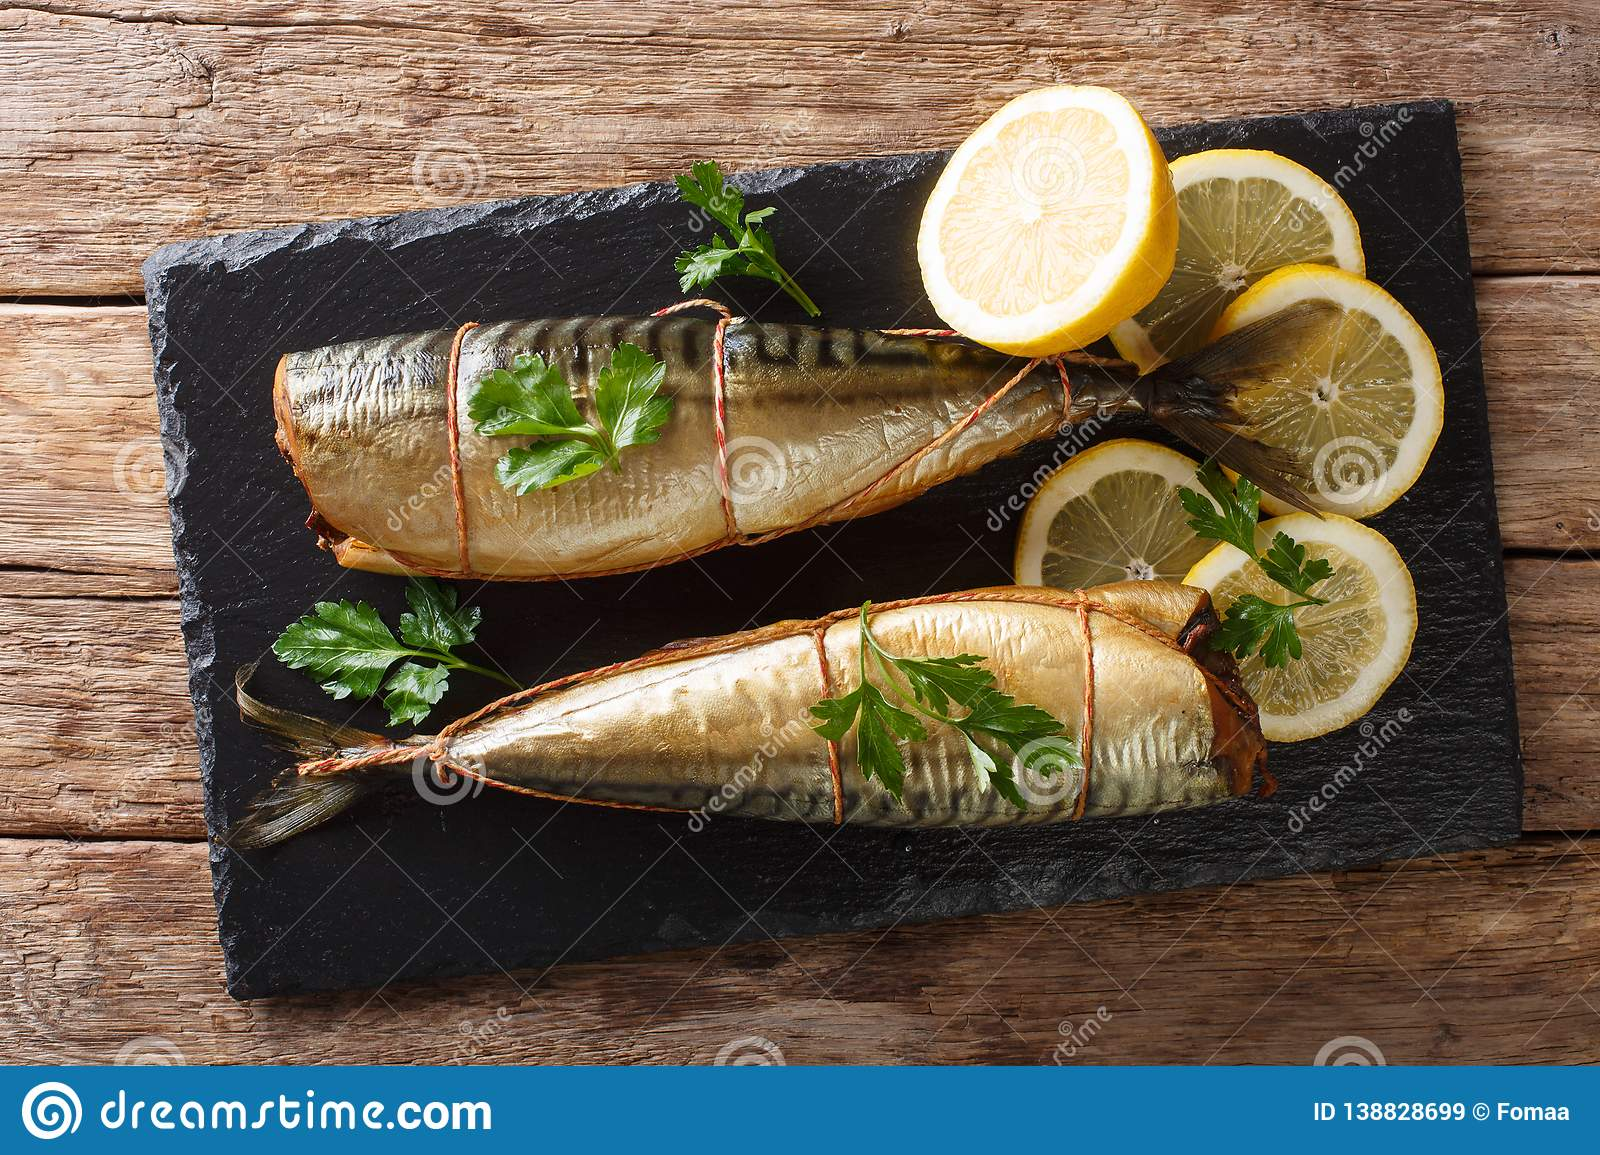 Smoked mackerel with lemons and parsley closeup on a slate board on the table. horizontal top view